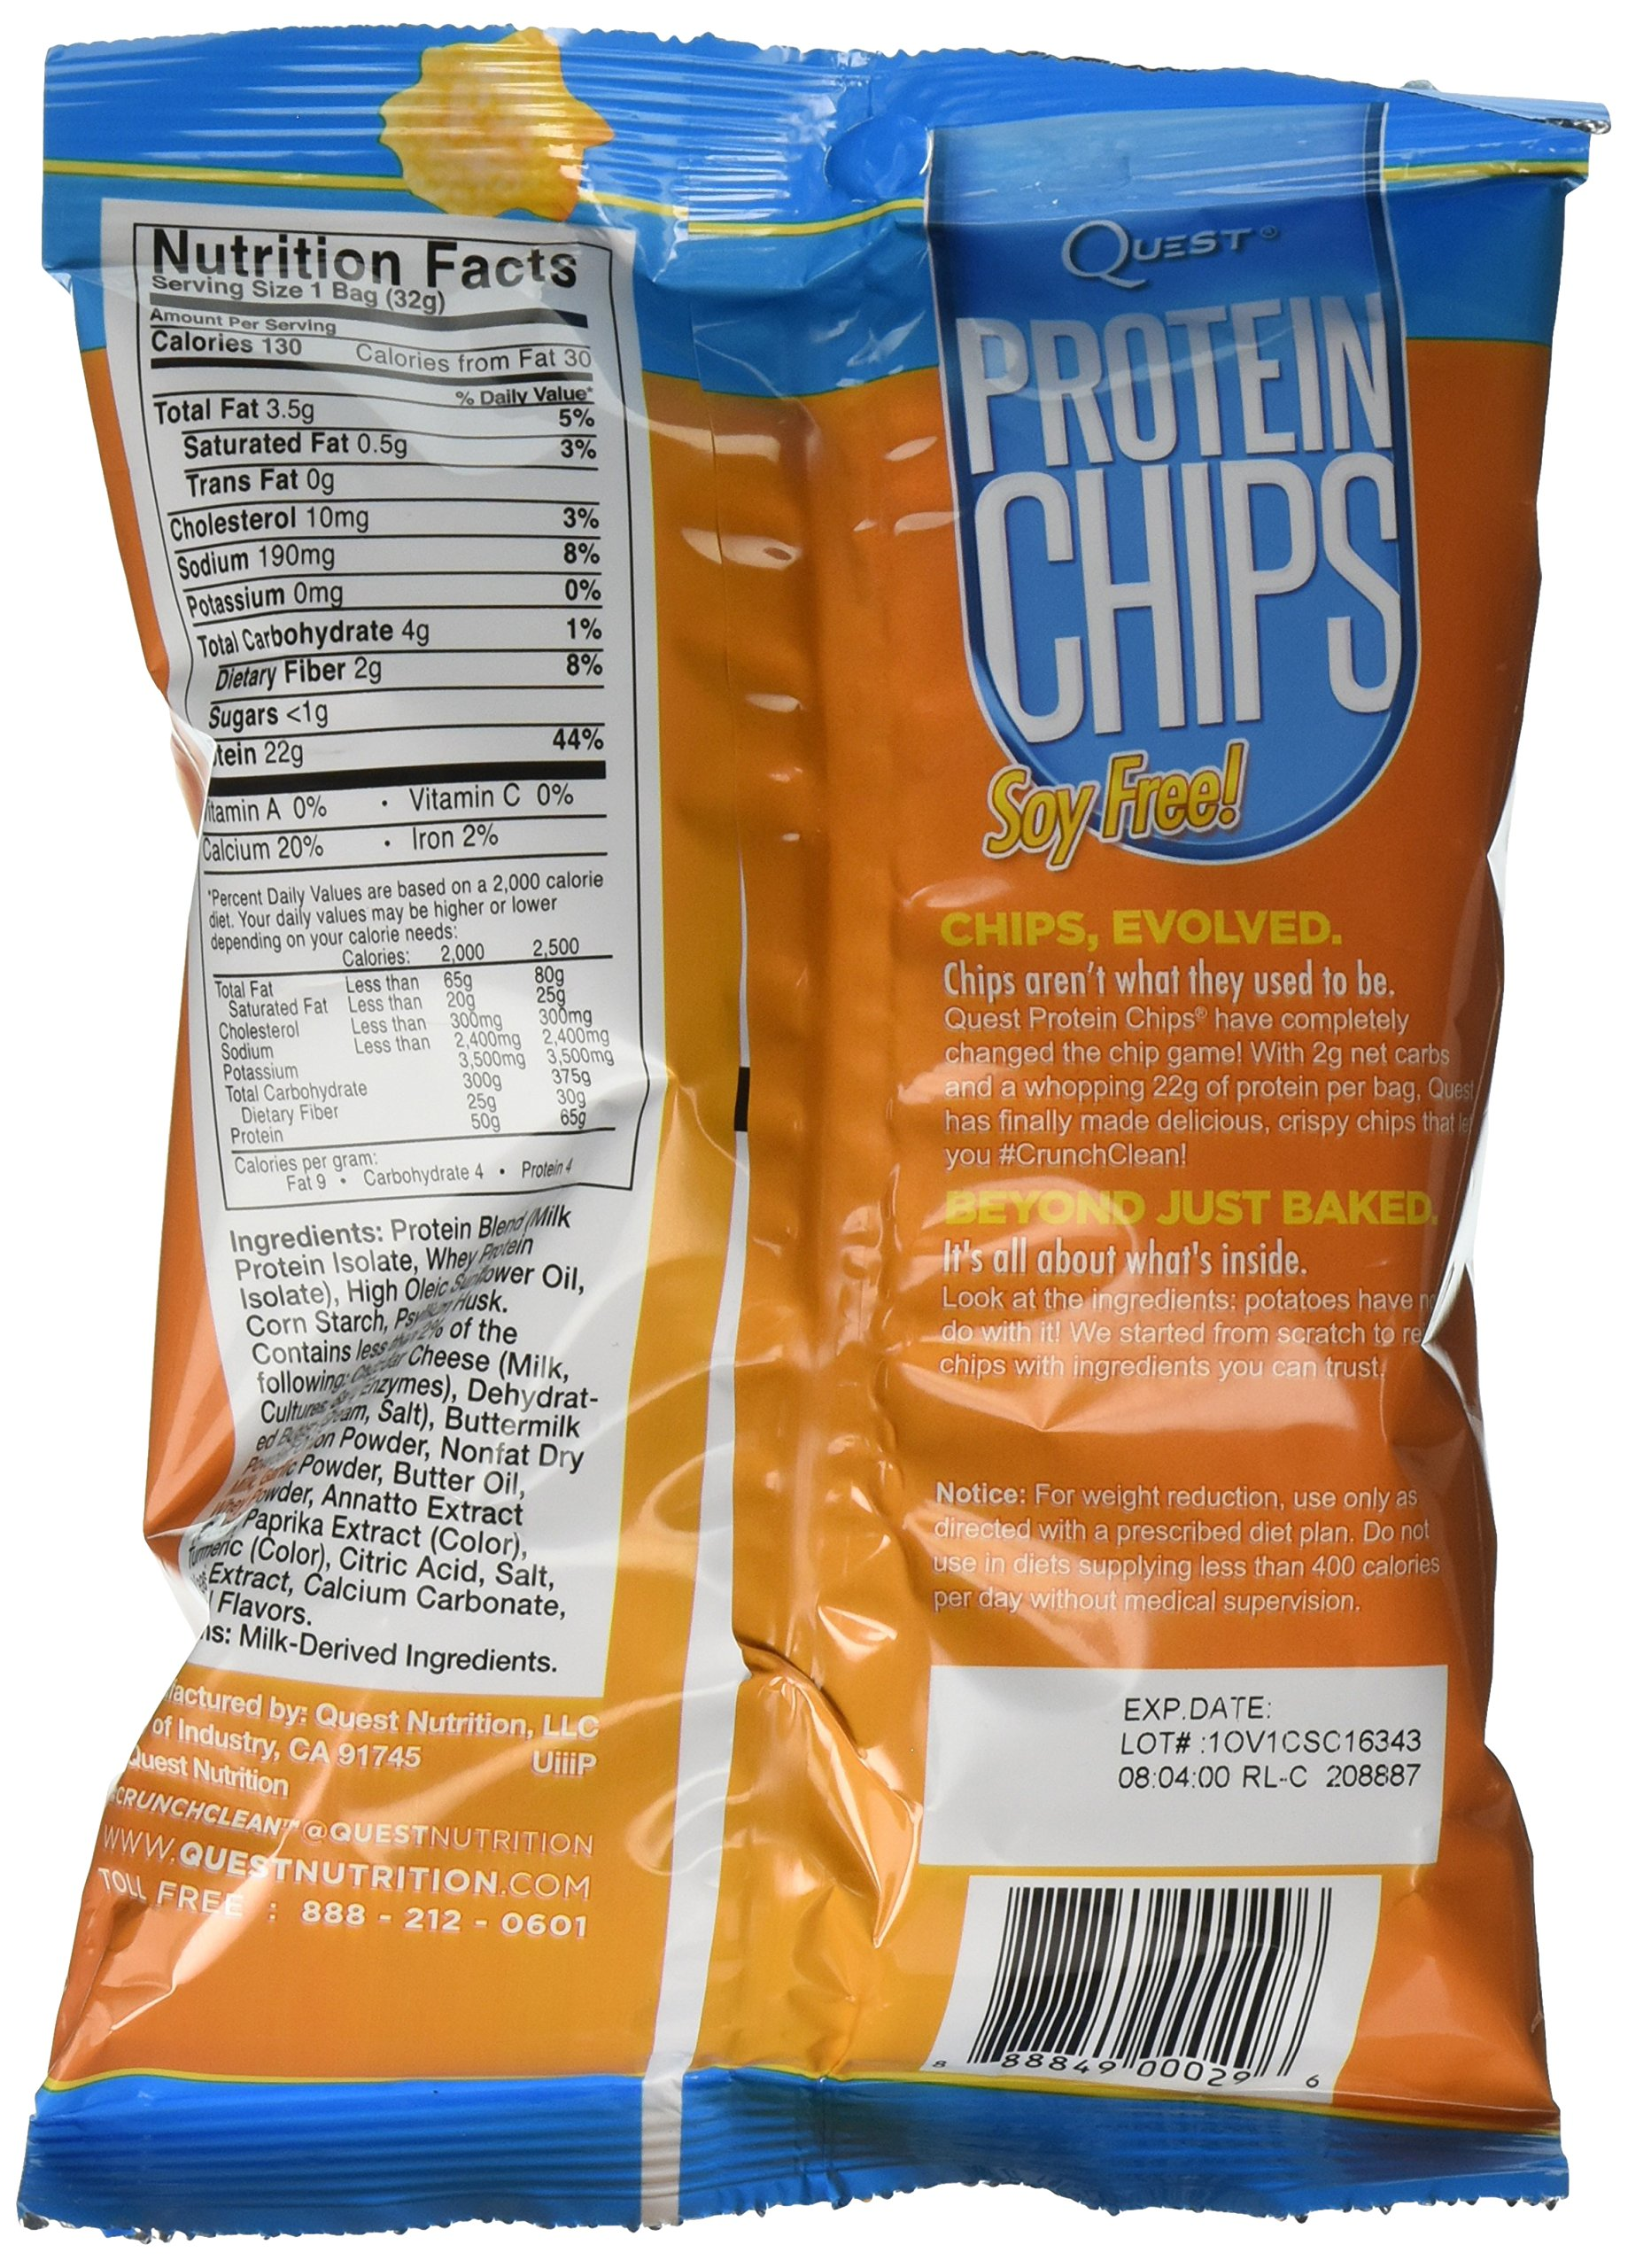 Quest Nutrition Protein Chips, Cheddar and Sour Cream, 16 Count by Quest Nutrition (Image #5)